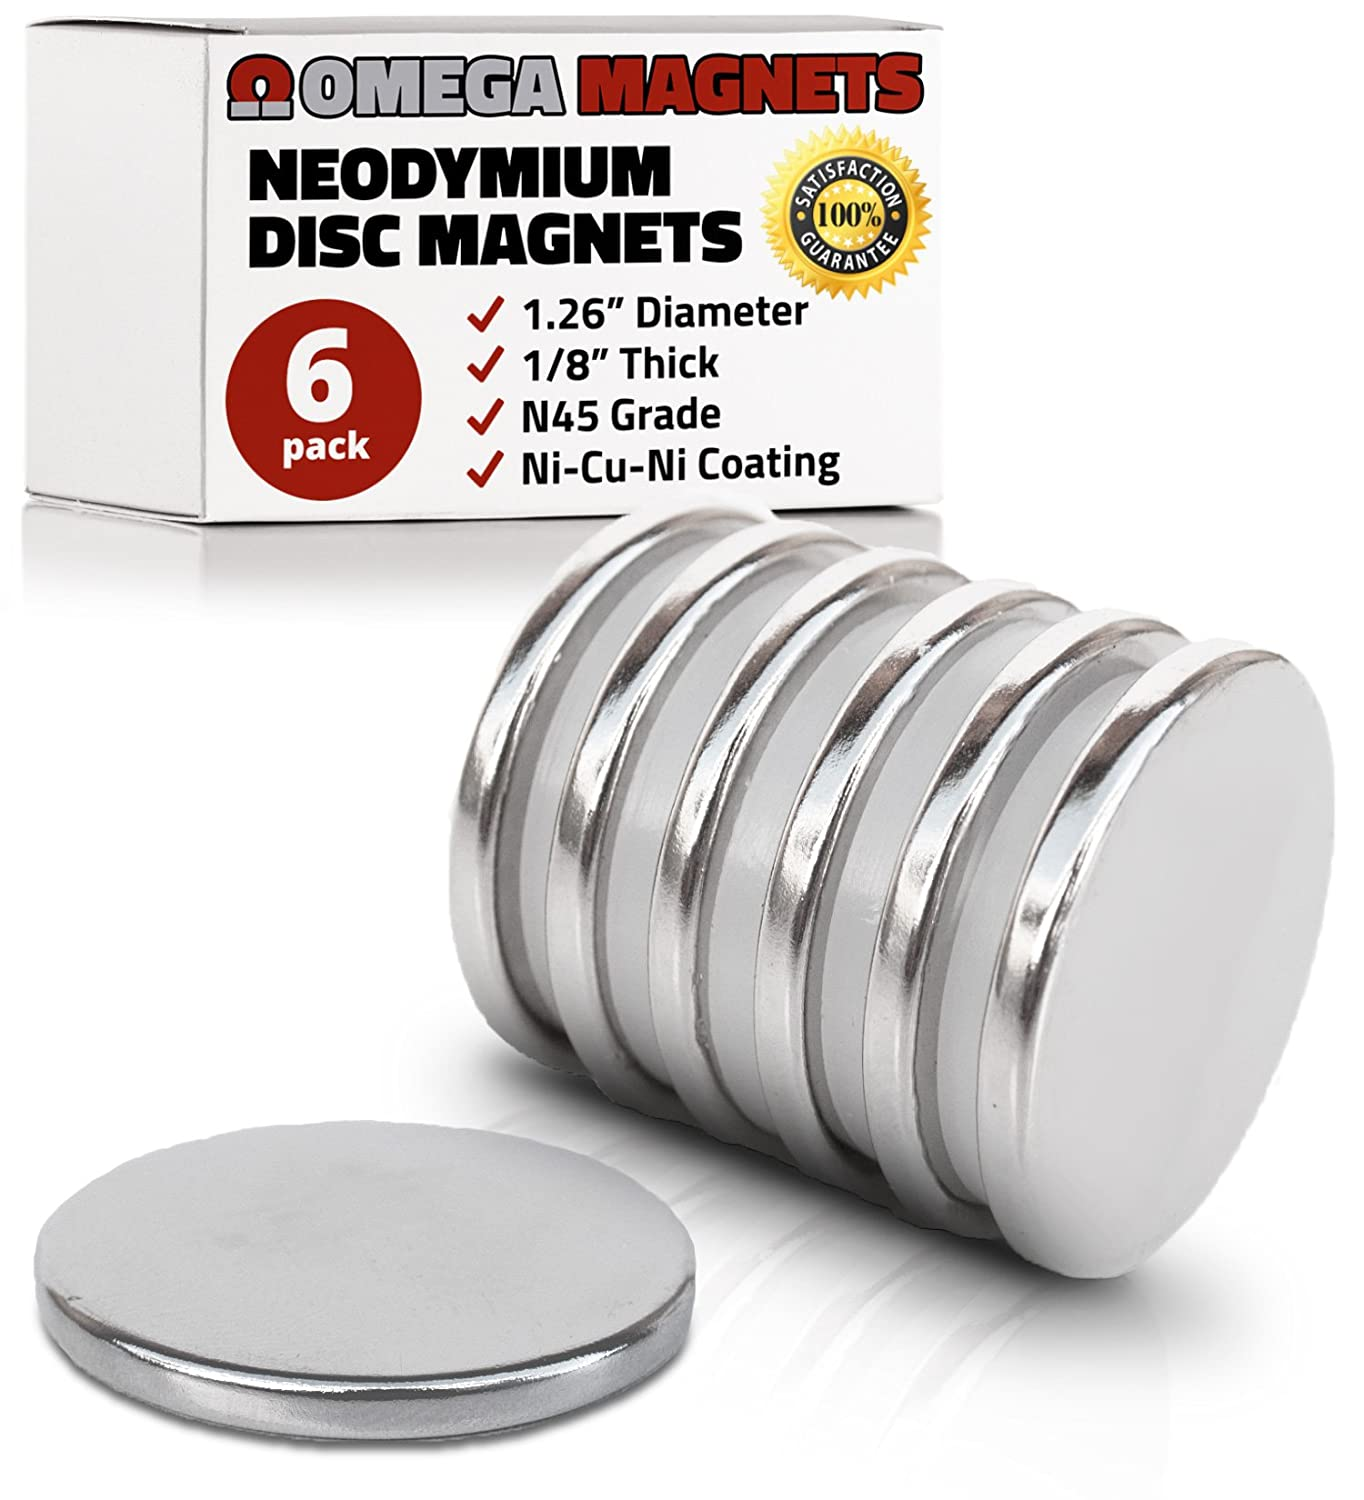 "Strong Neodymium Disc Magnets (6 Pack) - 2X Stronger, 2X Thicker, Powerful, Small, Round, Rare Earth Magnets - N45 Industrial Strength NdFeB Magnet Set for Fridge, DIY, Crafts - 1.26"" x 1/8"""